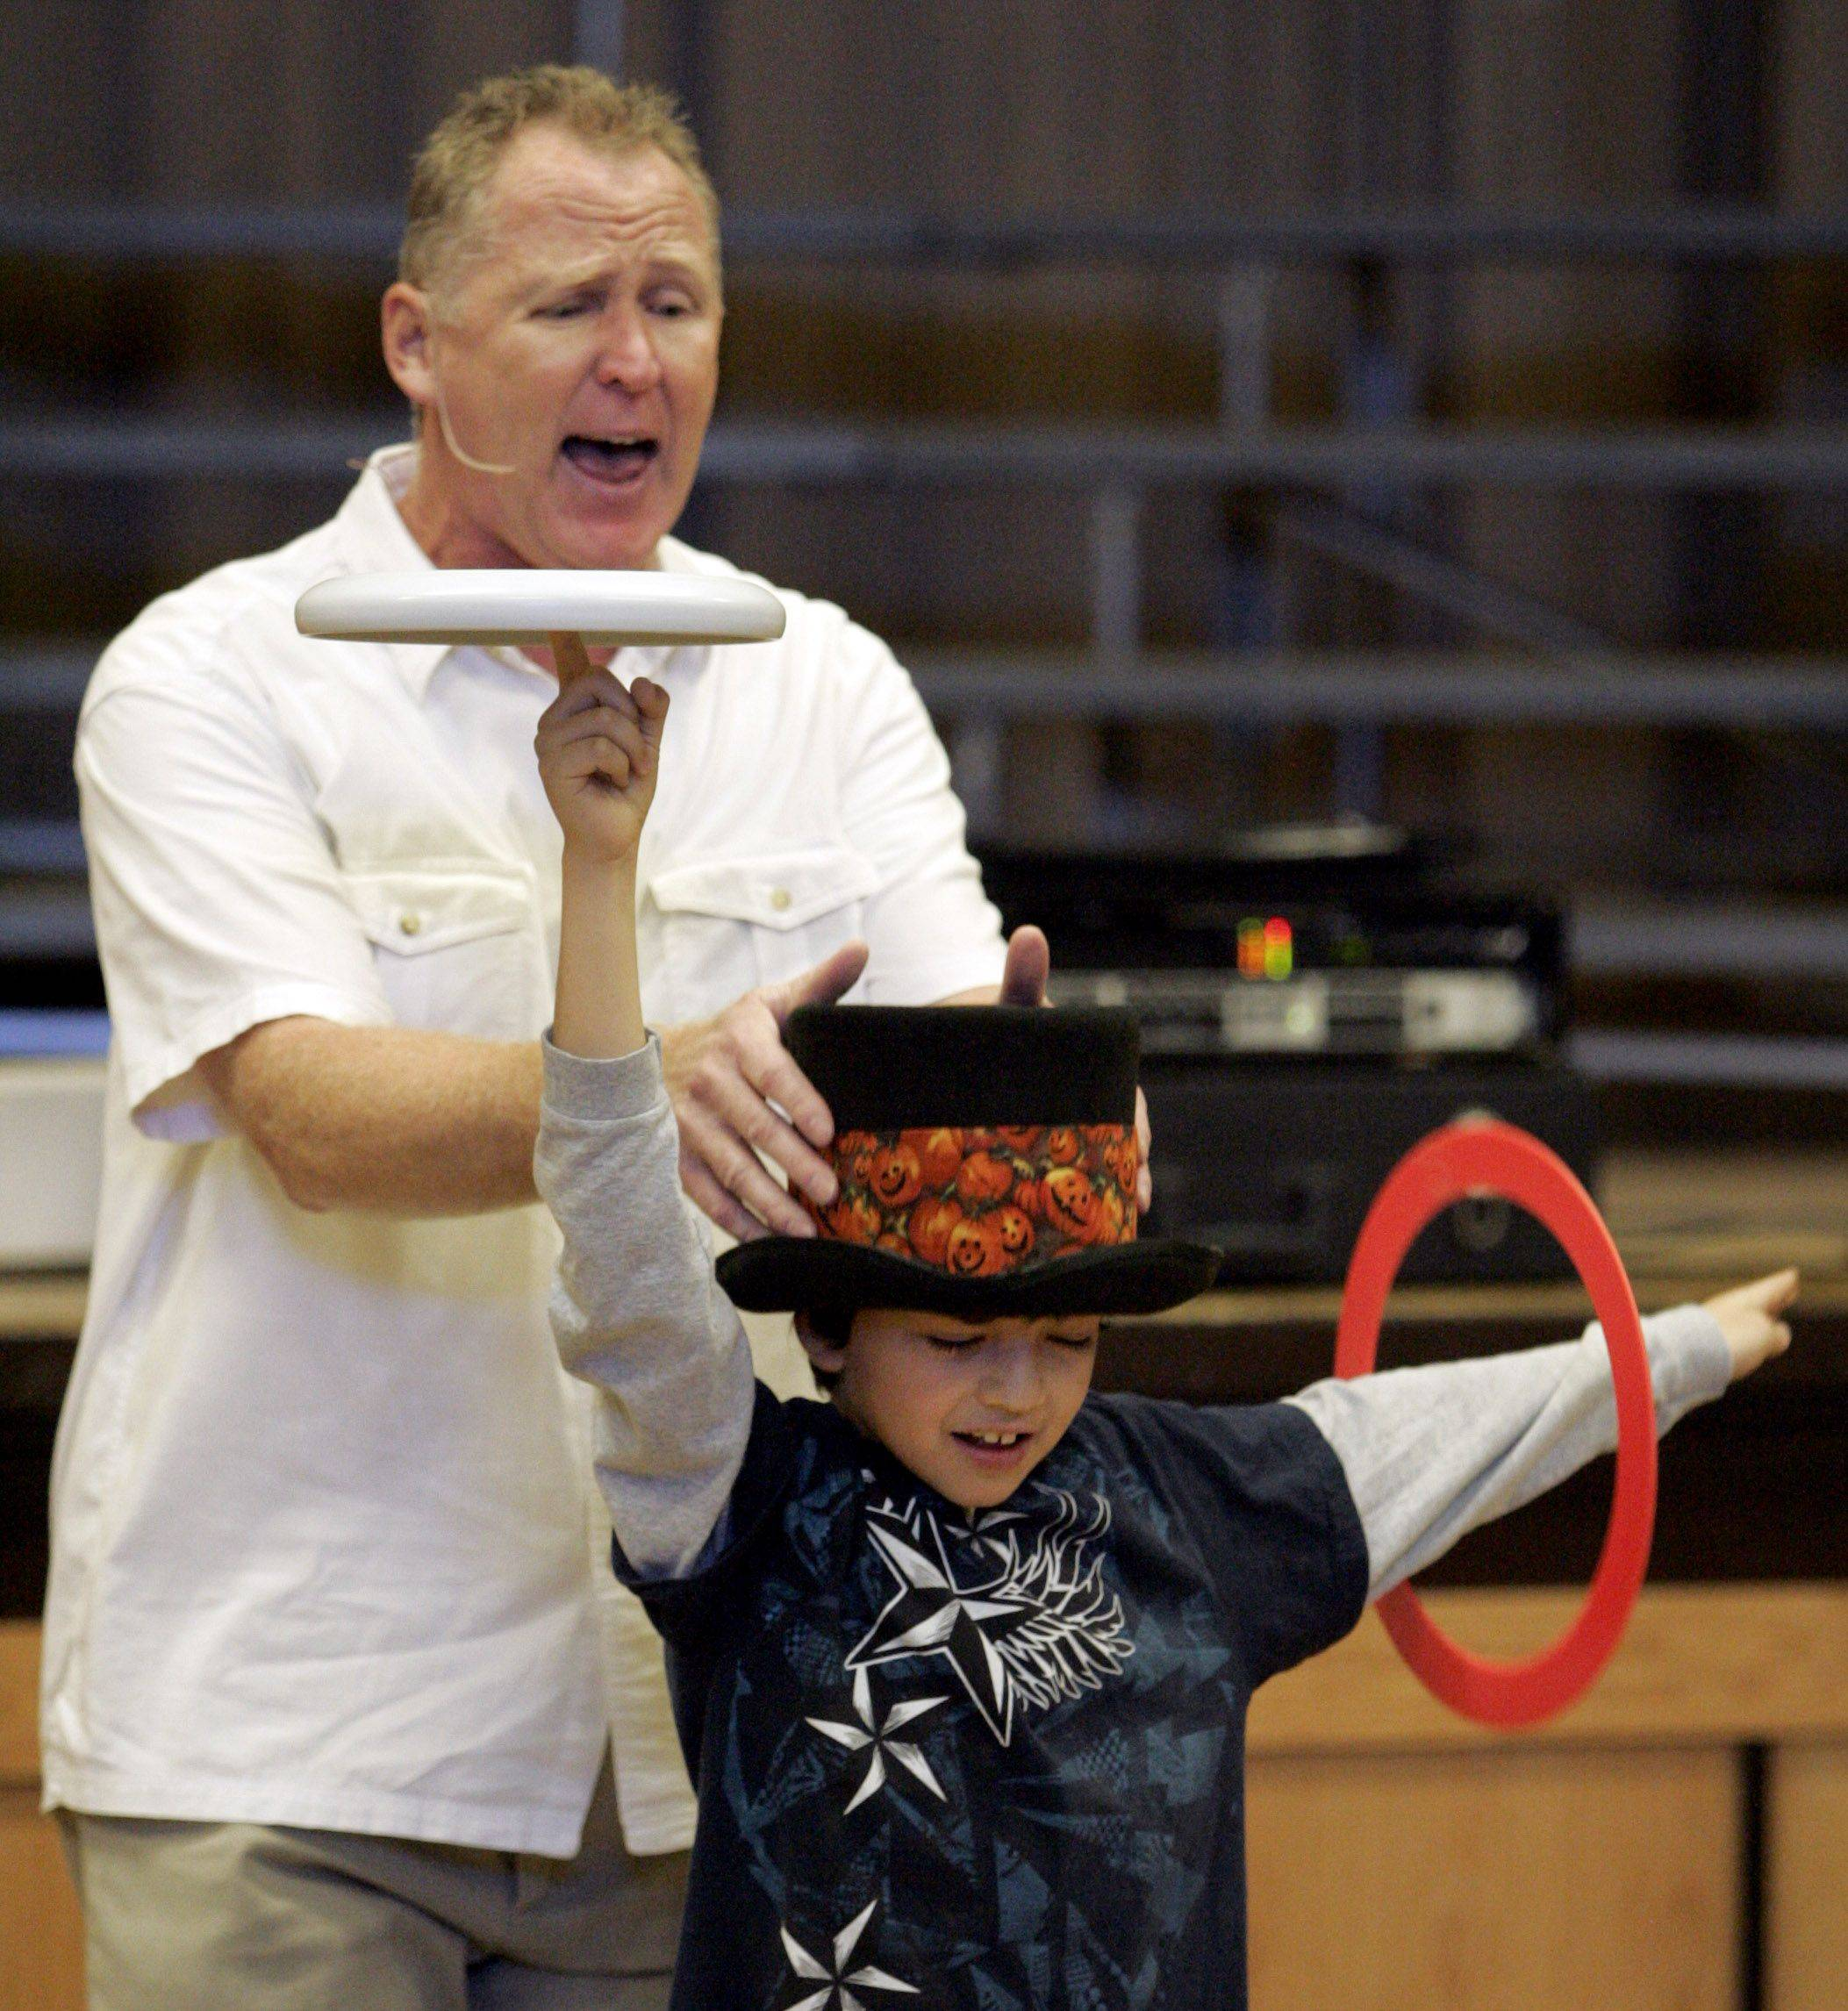 Third grader Gerardo Gil performs with juggling expert Mike Vondruska during an assembly at Diamond Lake School in Mundelein.